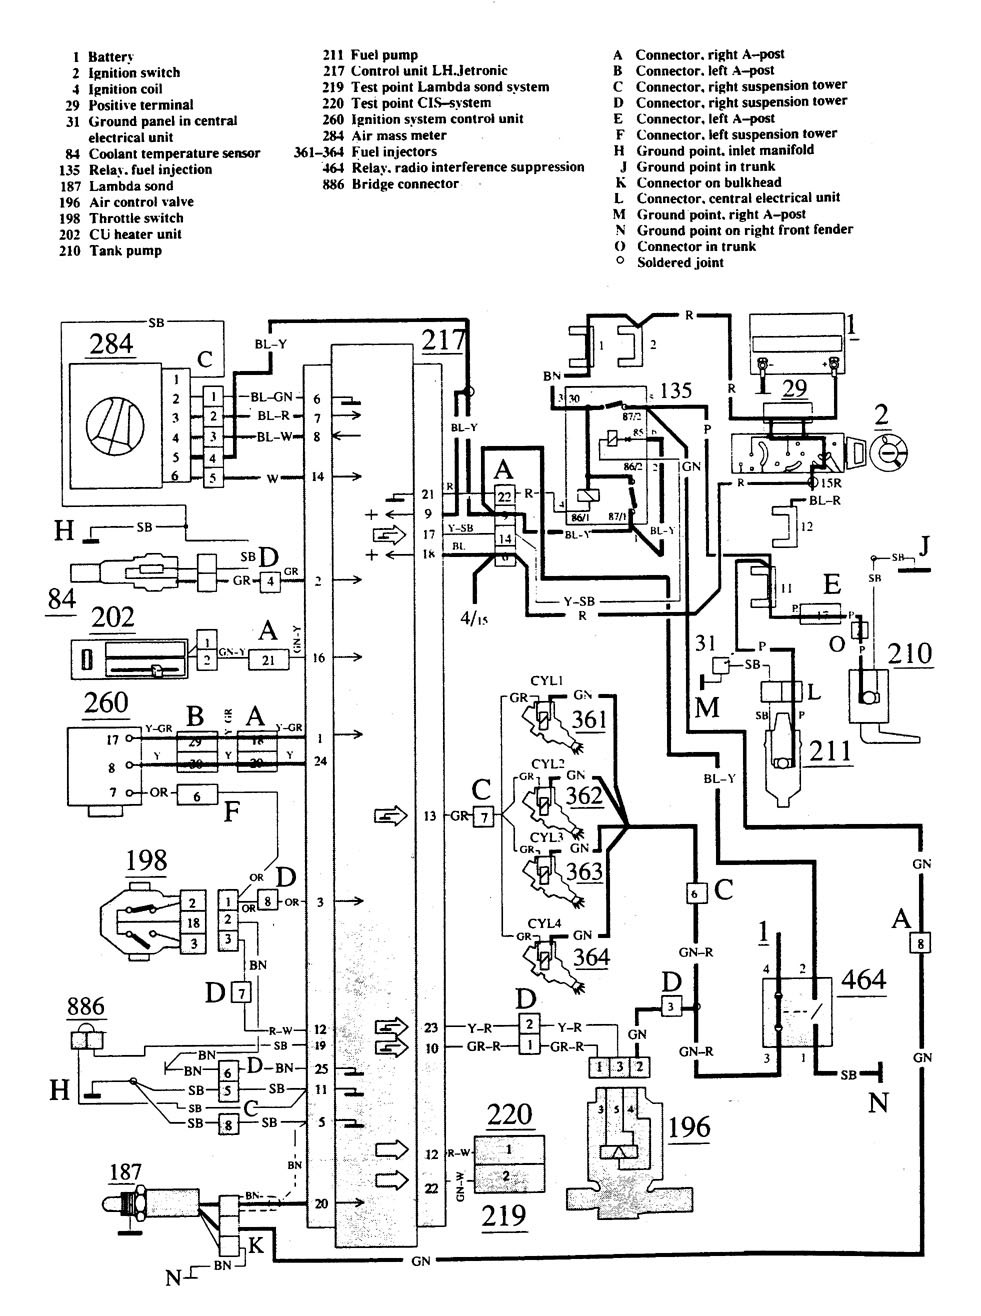 96 pontiac wiring diagram